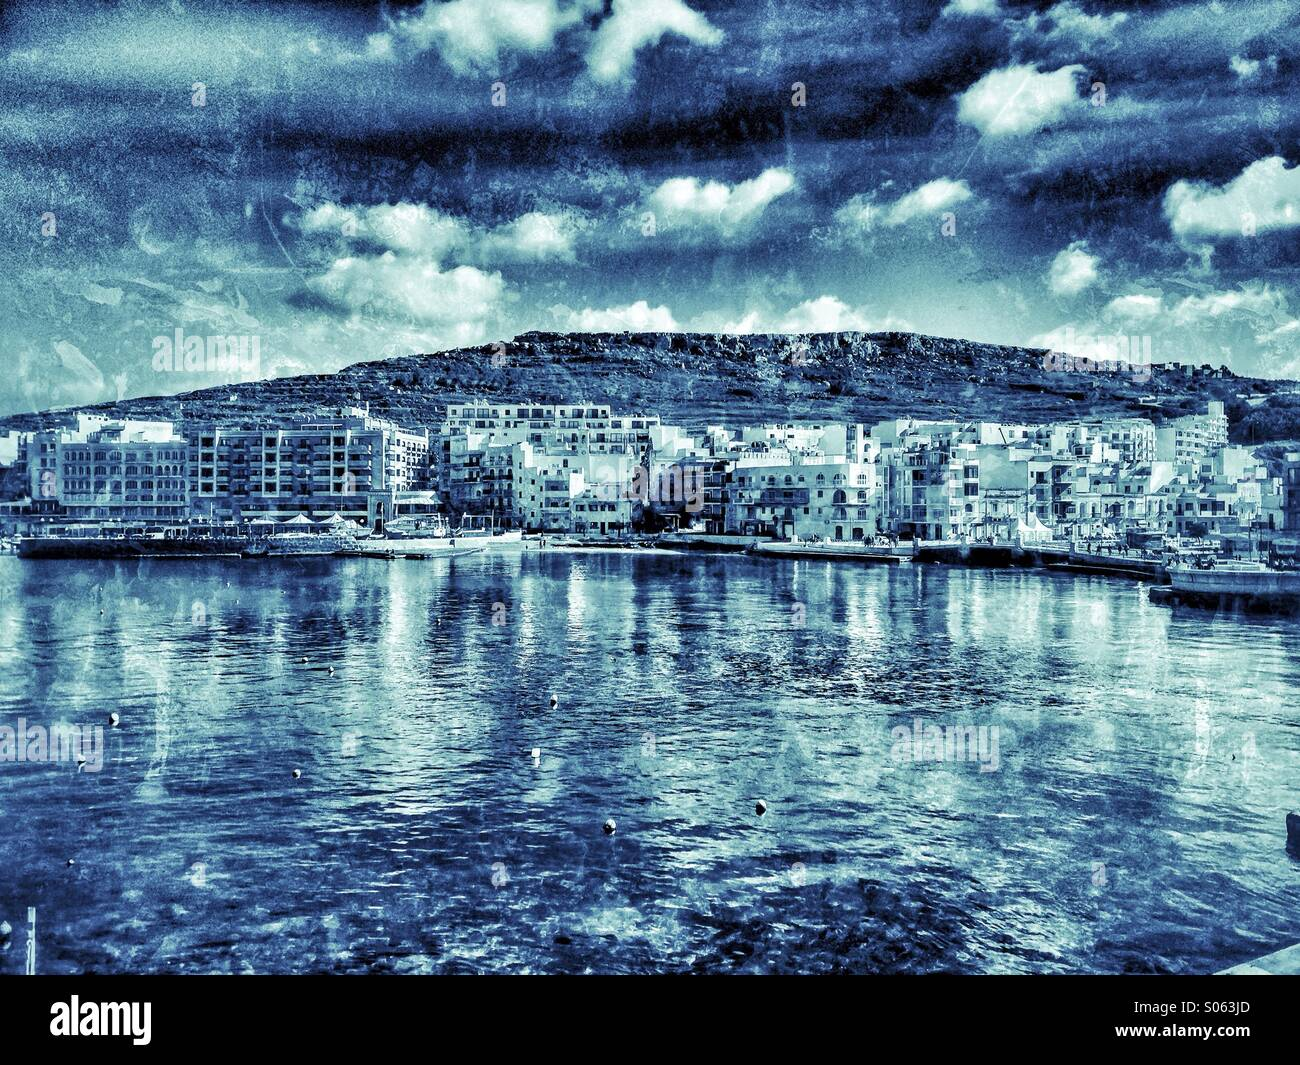 Marsalforn bay early in the year - Stock Image